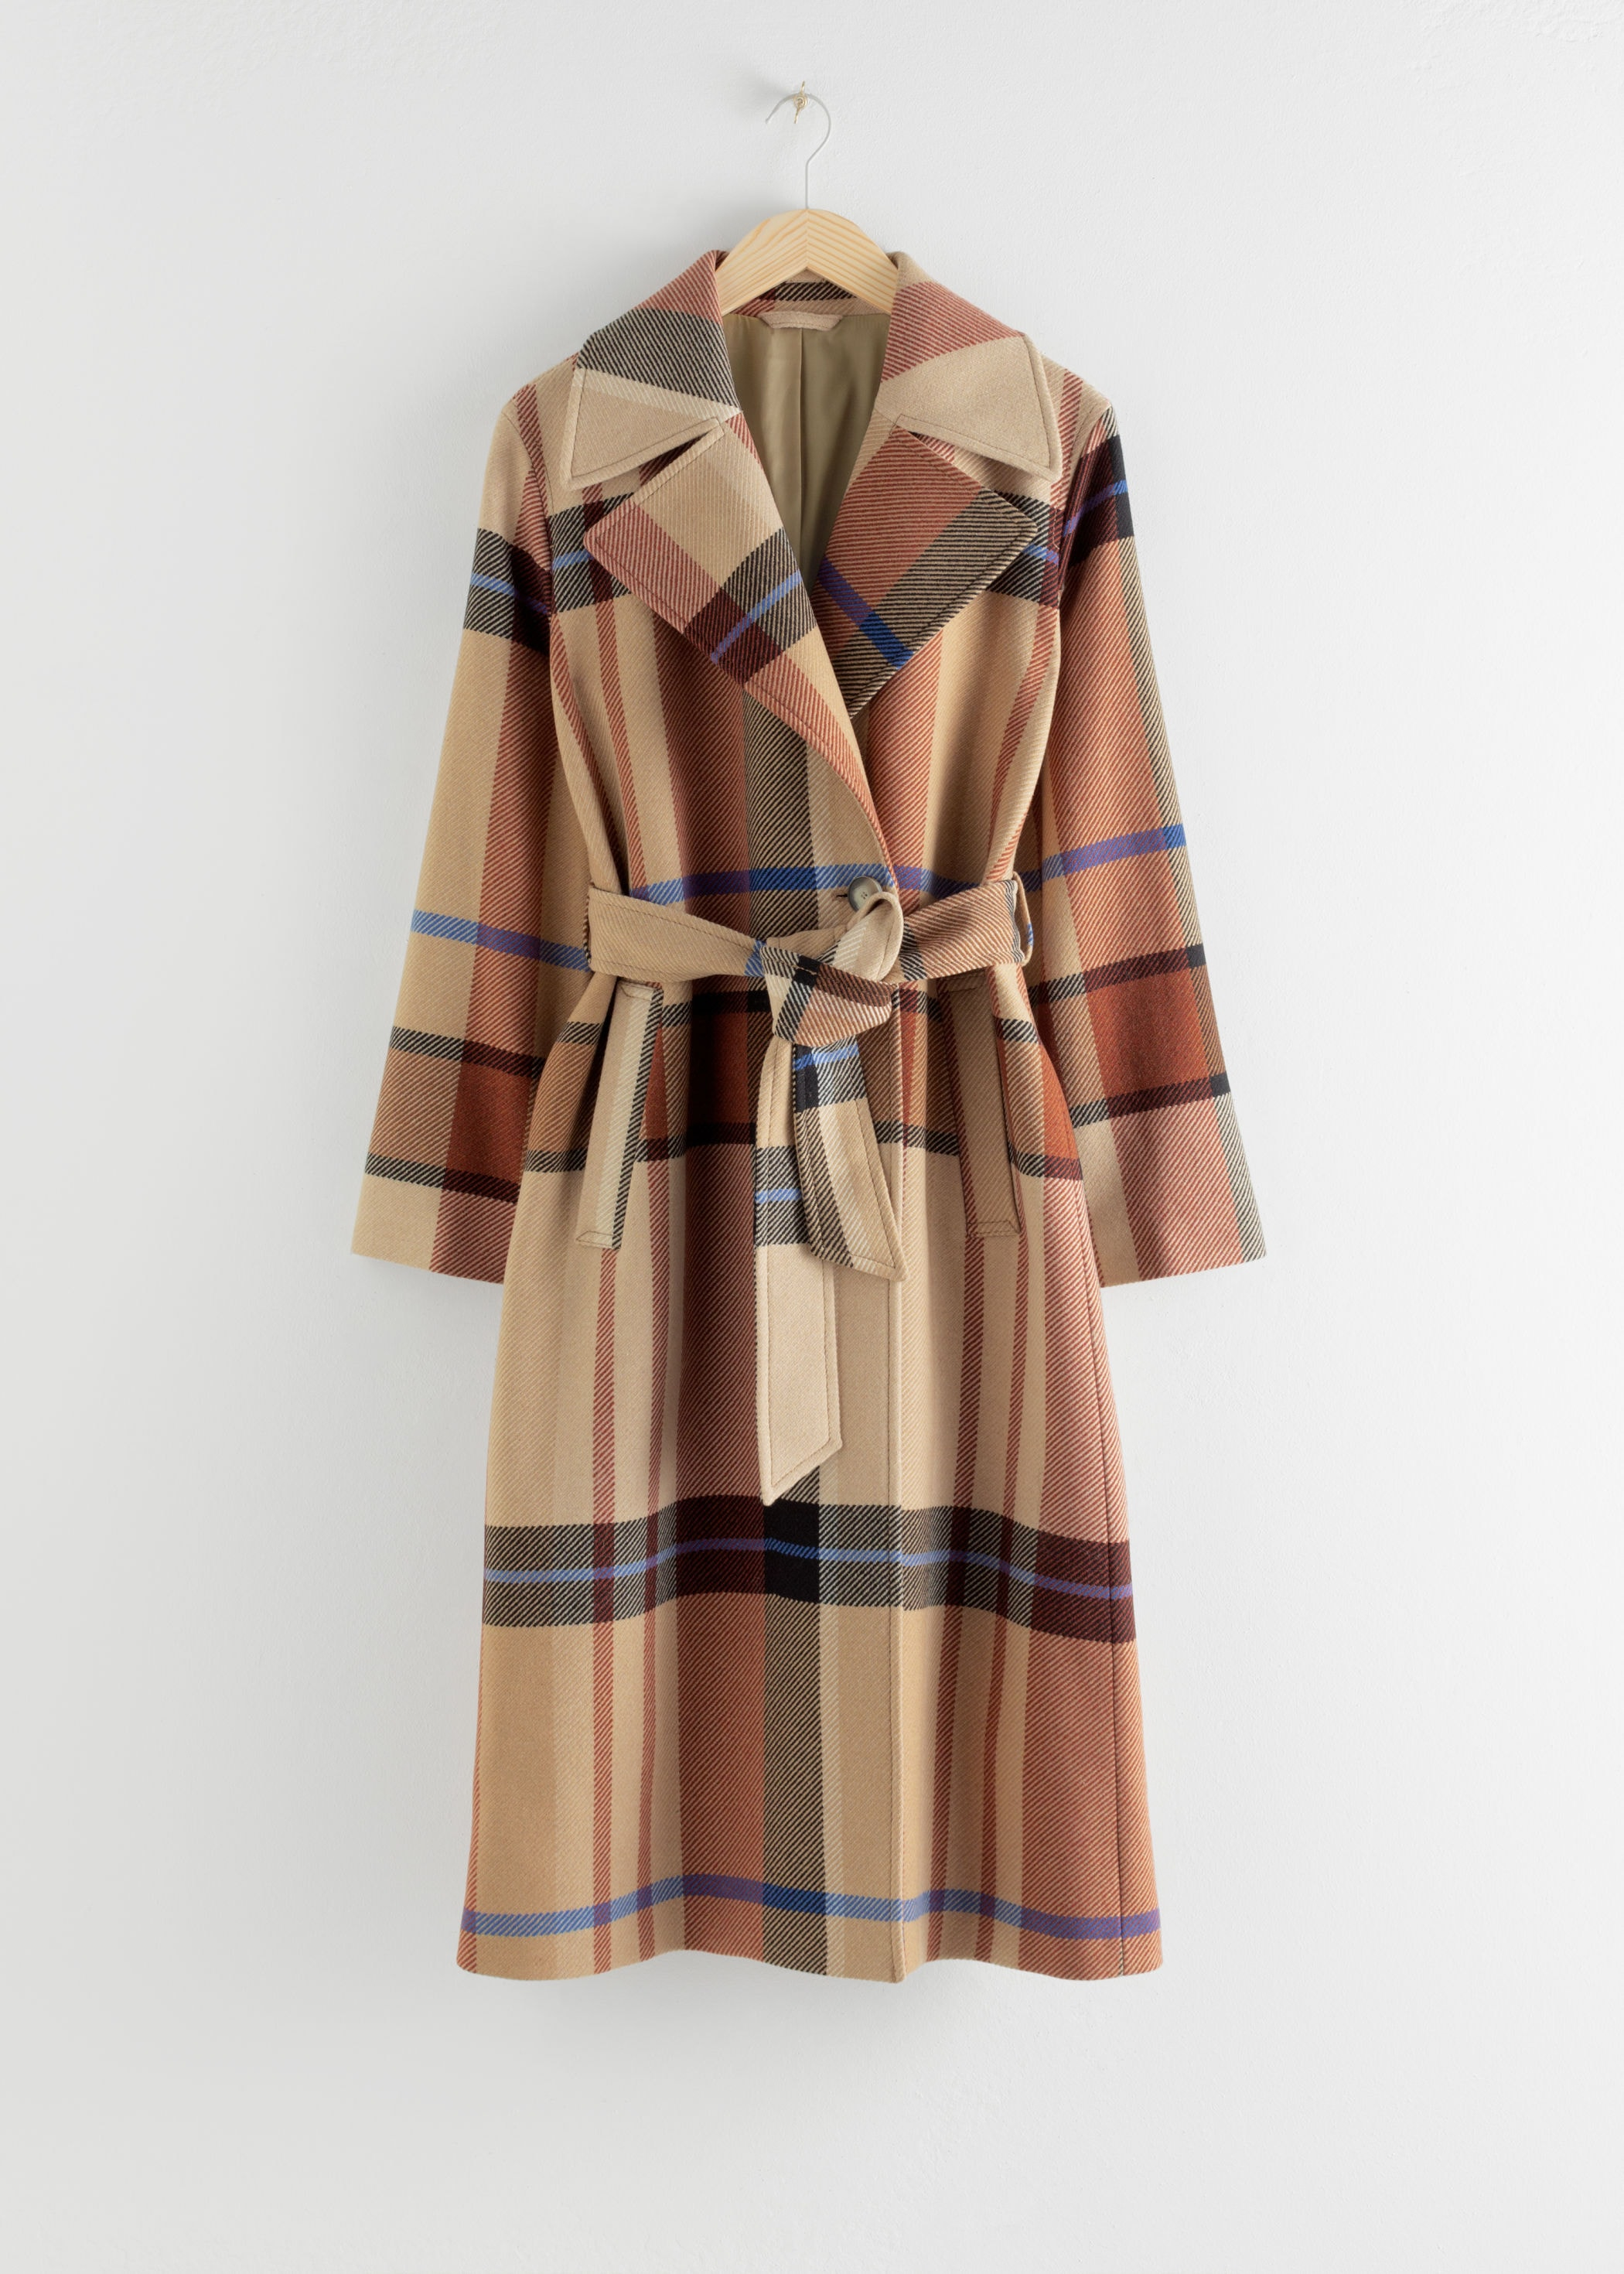 & Other Stories Plaid Trench Coat